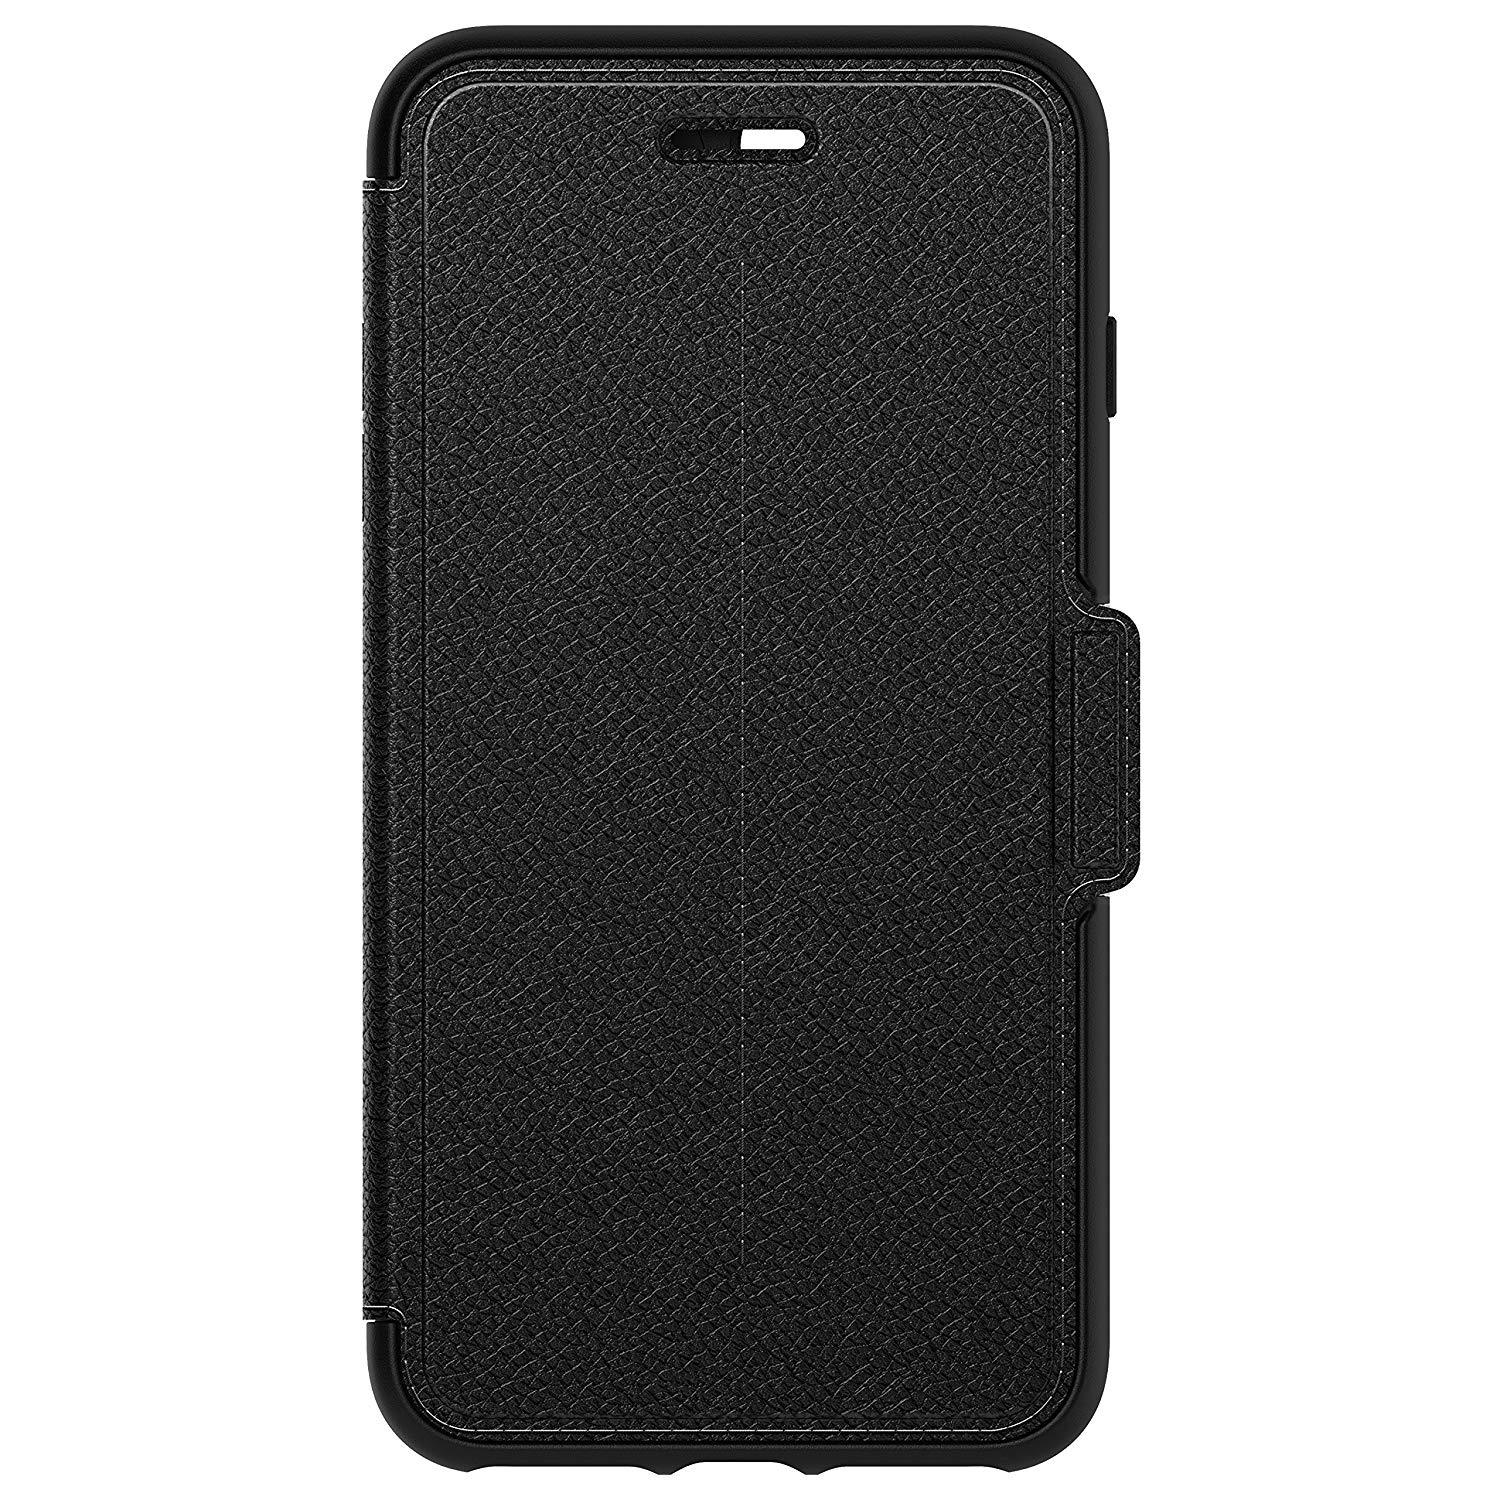 OtterBox Strada For iPhone 7 Plus - Black